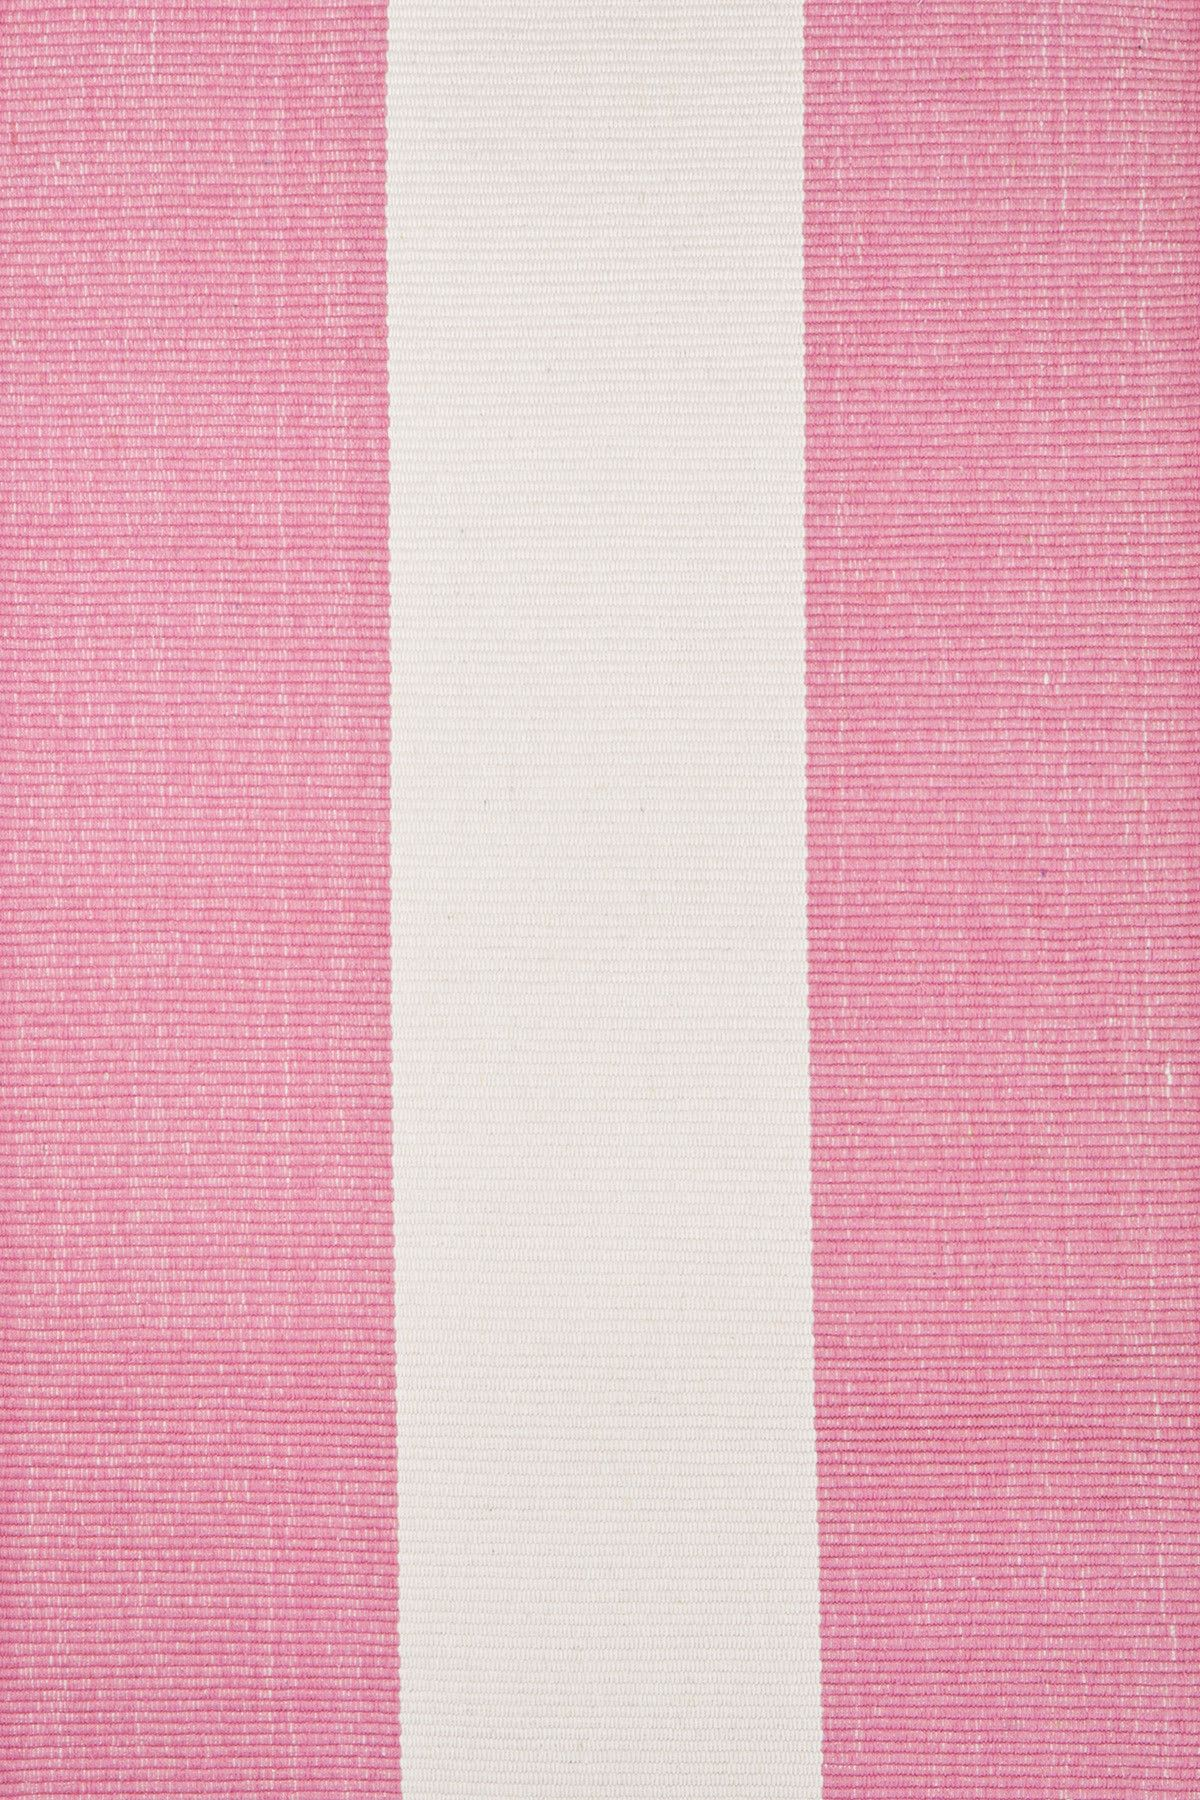 Dash And Albert Rugs Woven Pink Yacht Stripe Area Rug Reviews